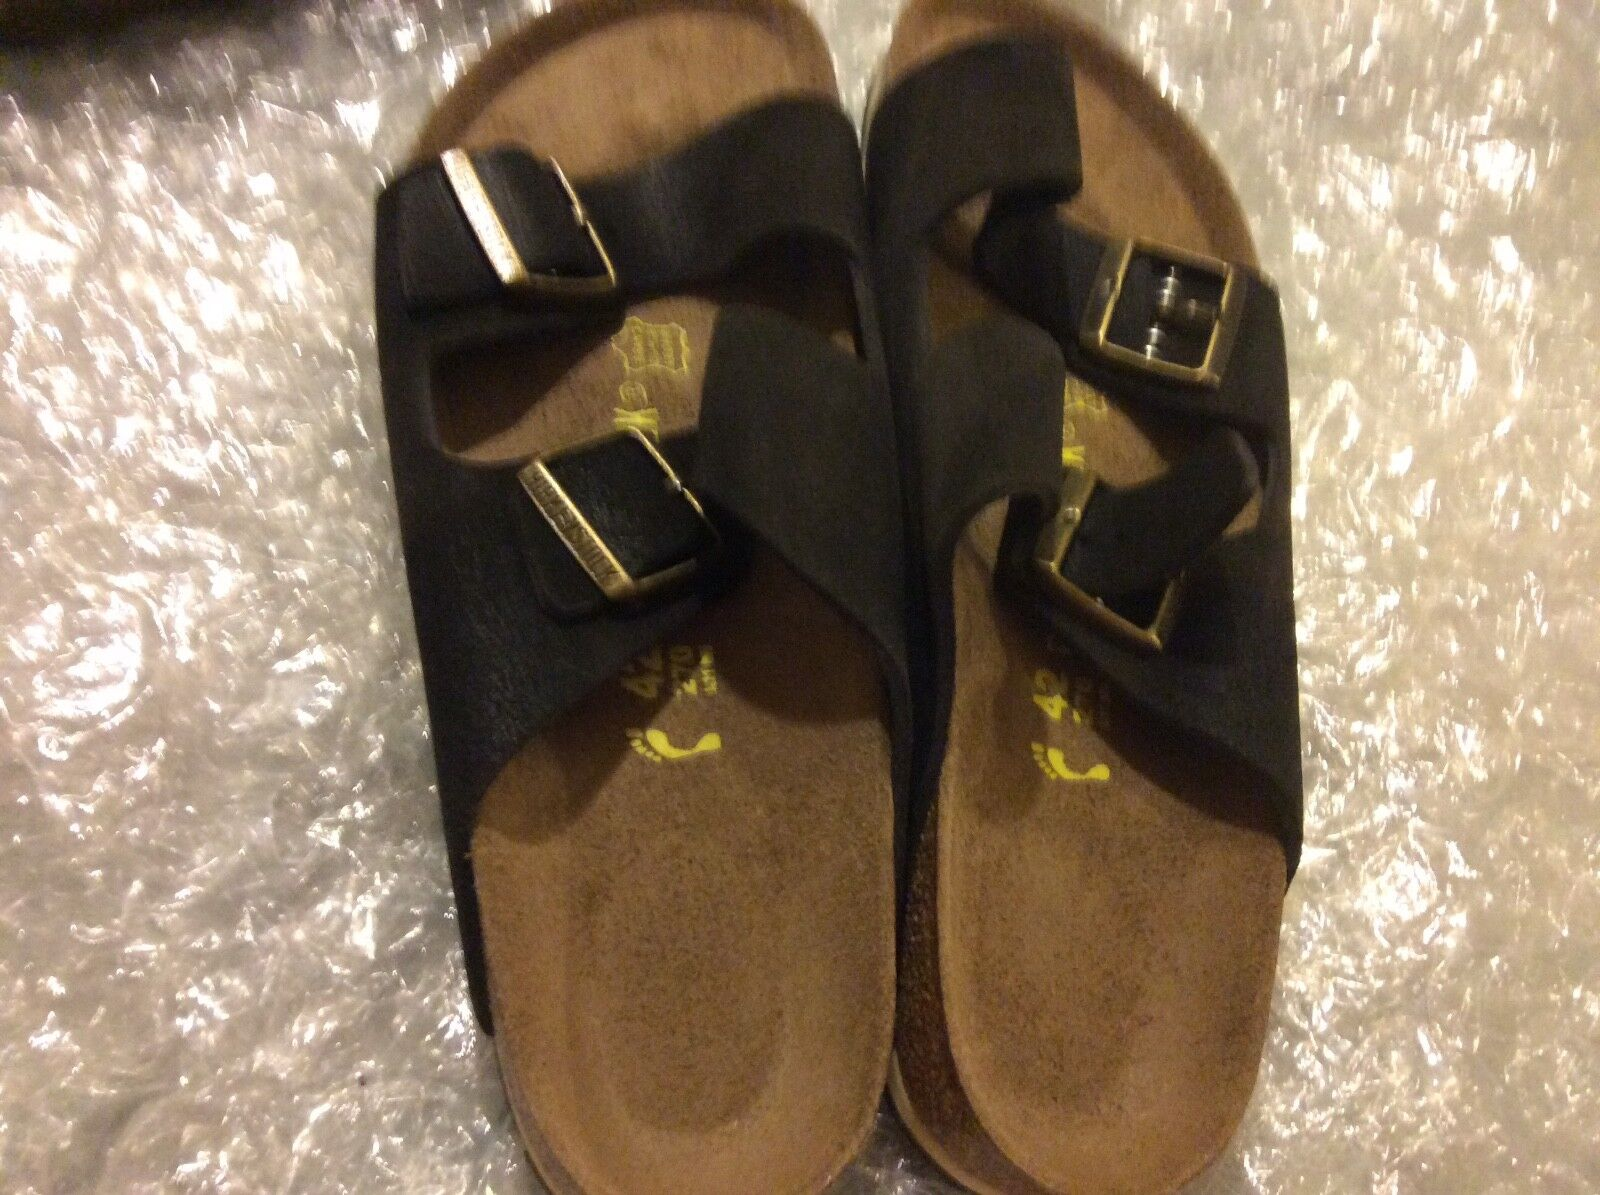 BIRKENSTOCK ARIZONA BLACK Damens'S 42 U.S.11N MEN'S 9N EU 42 Damens'S 20177b